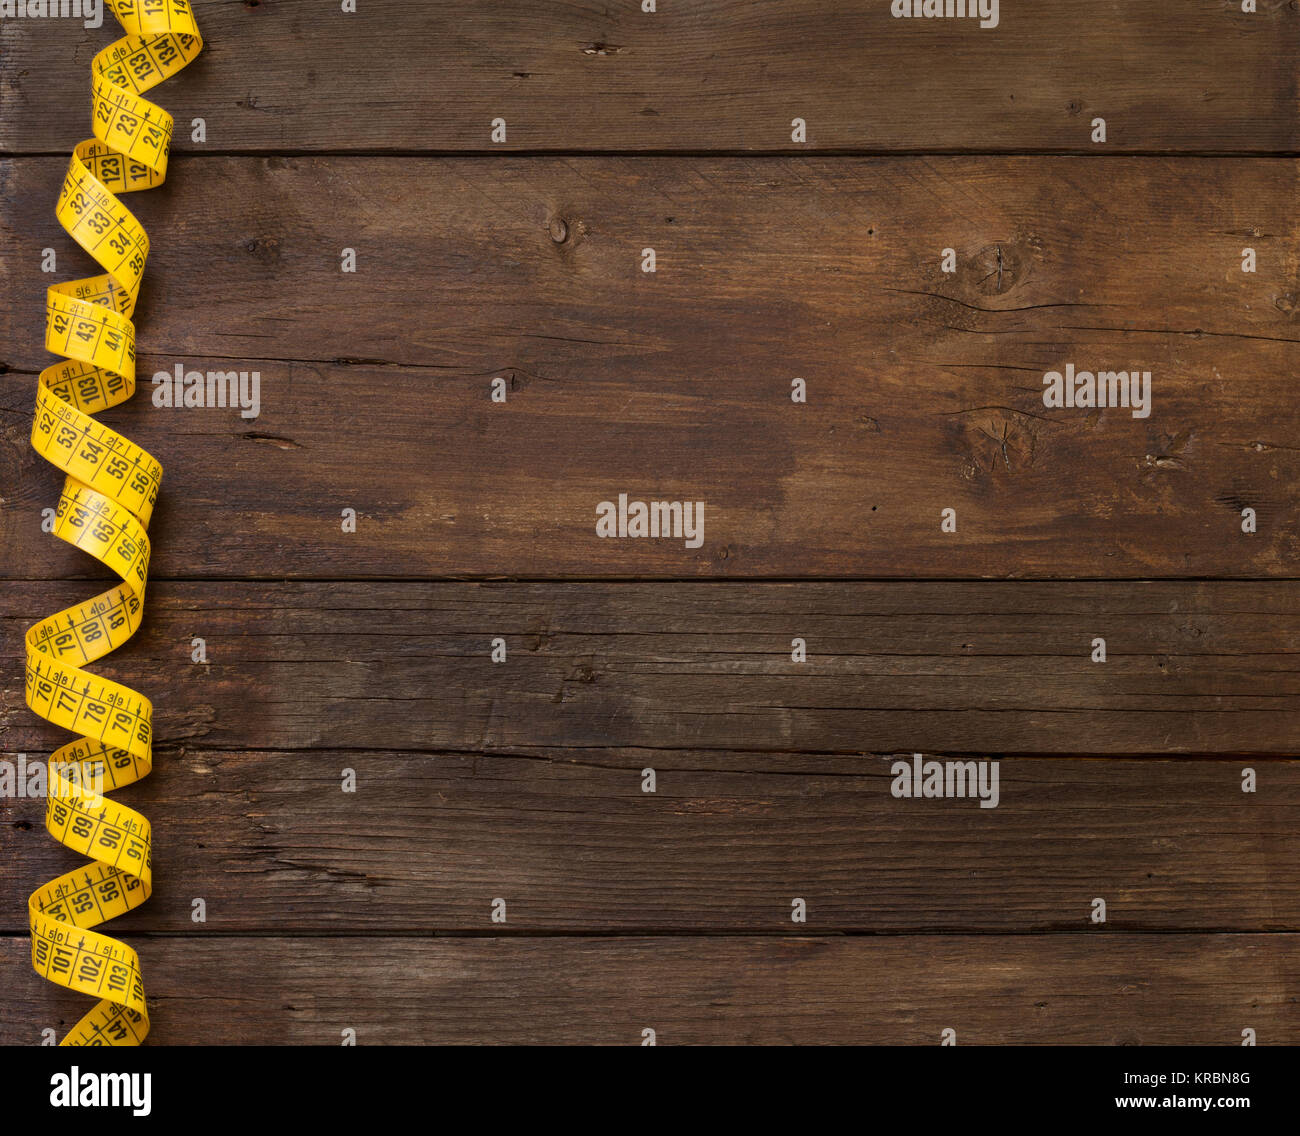 A coiled yellow measuring tape Stock Photo